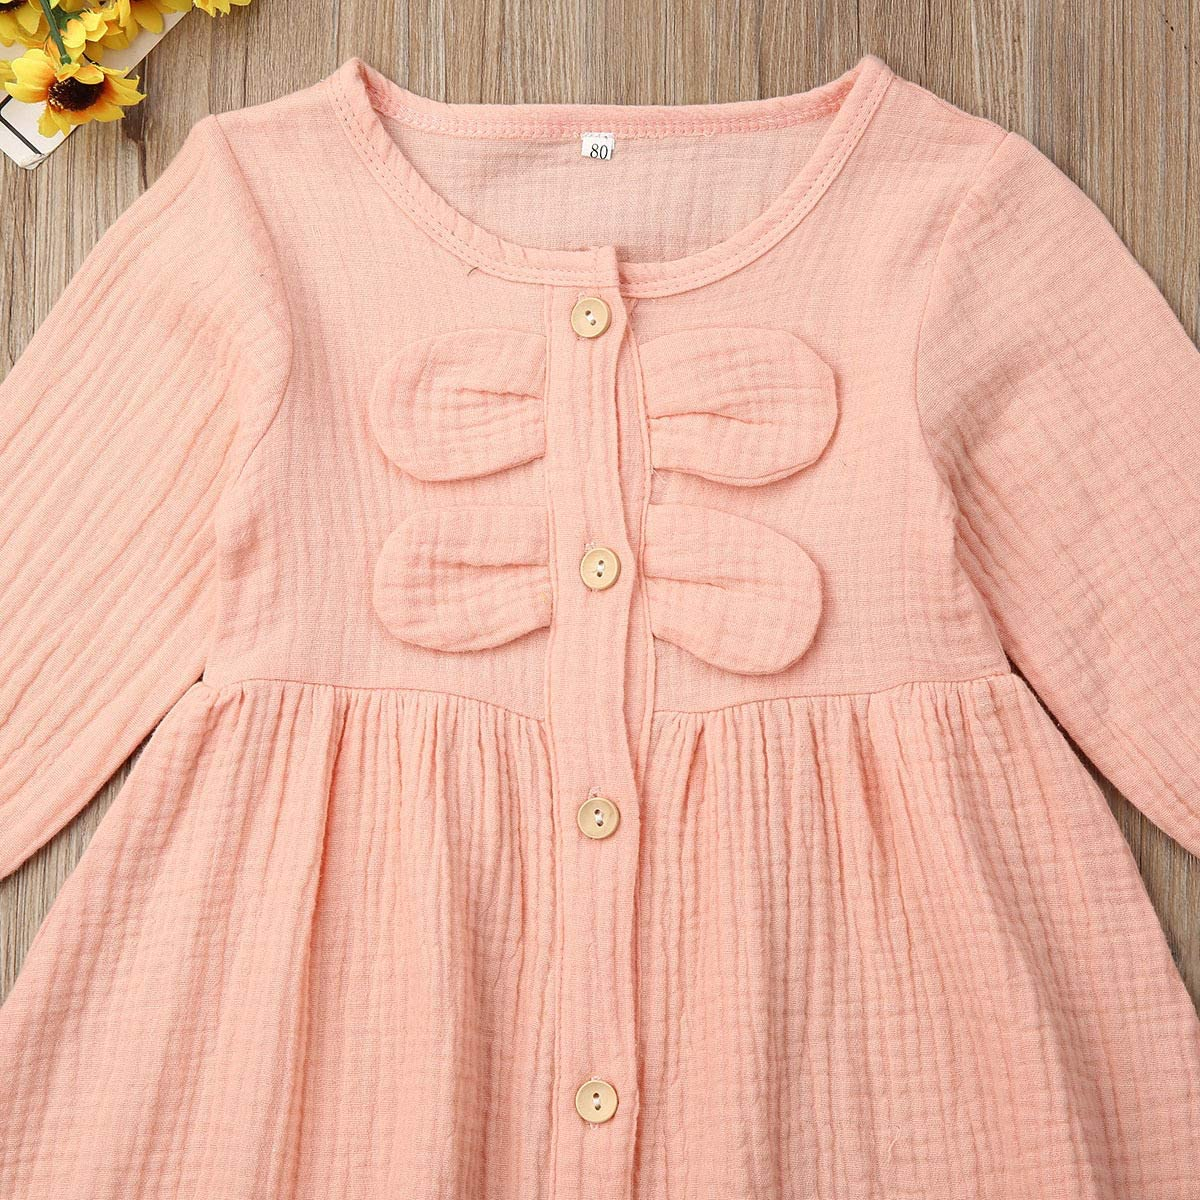 Verve Jelly Toddler Infant Baby Girls Linen Dress Ruffle Long Sleeve Button Bowknot Casual Dresses Princess Party Tutu Dress